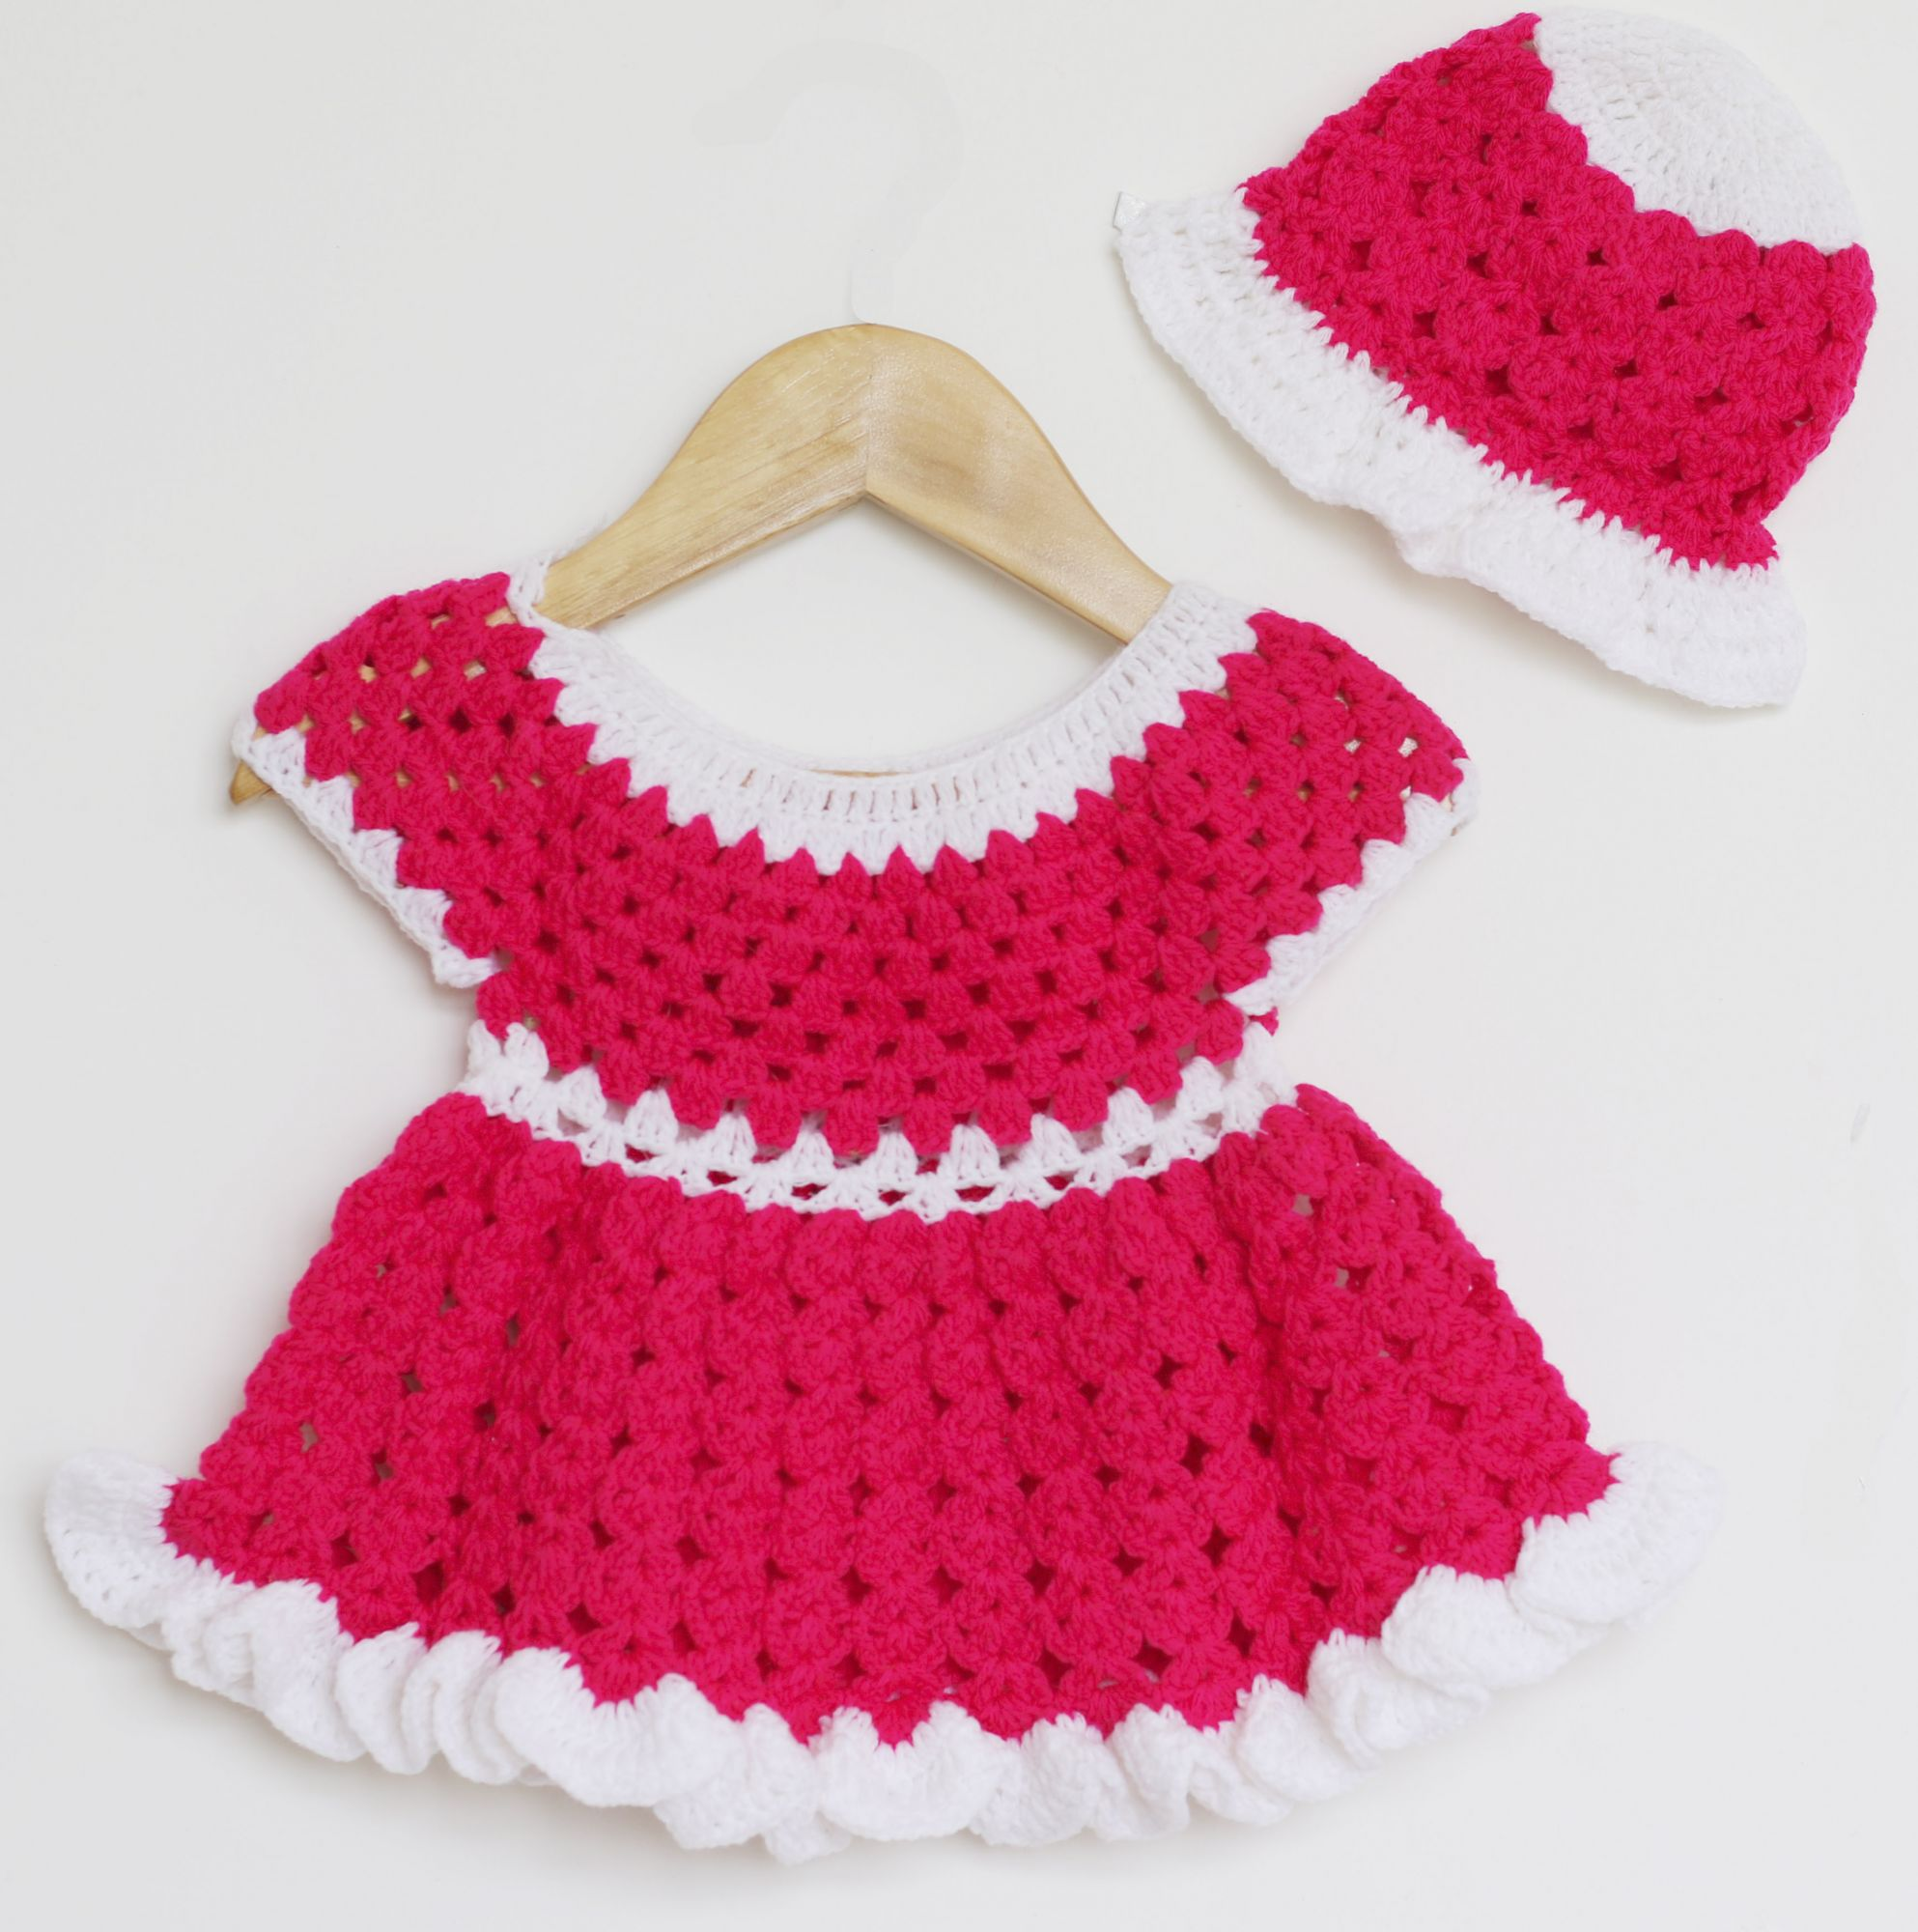 Woonie Handmade Woolen Pink Frock Set for Girls